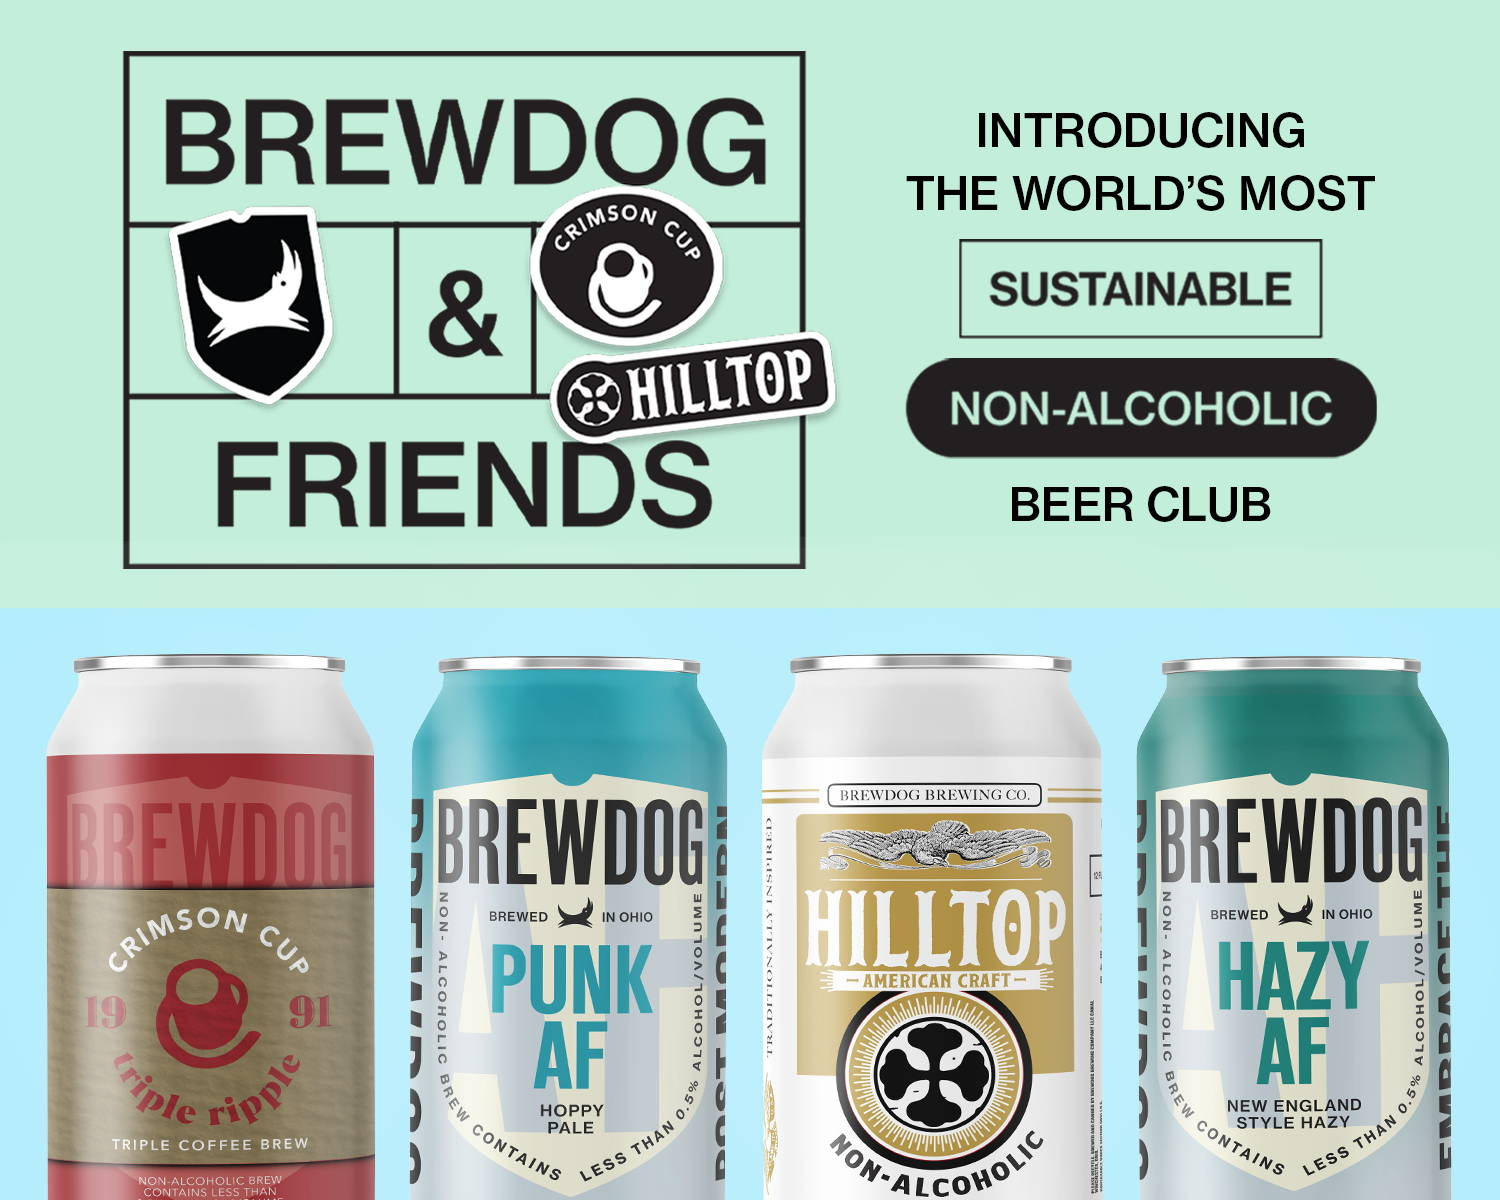 BrewDog & Friends. The world's most sustainable non-alcoholic beer club.